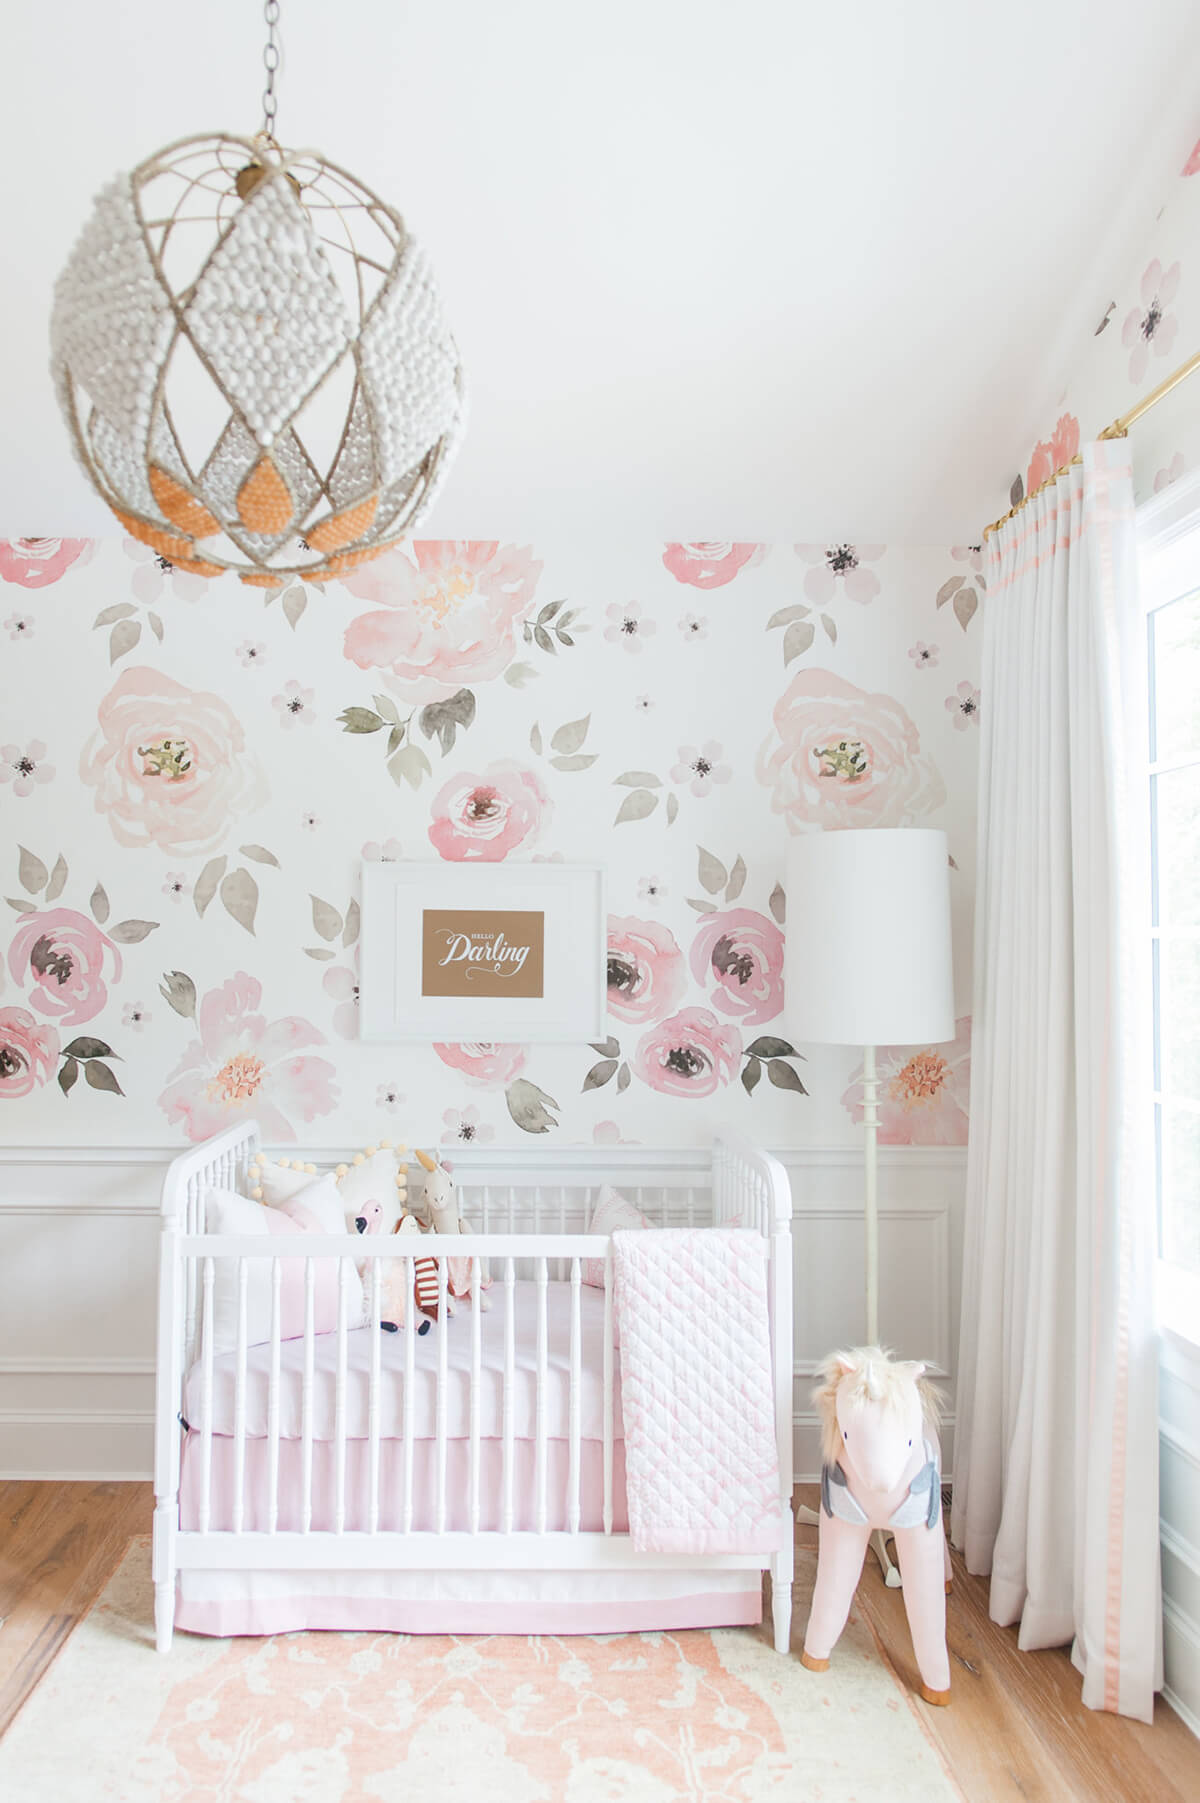 Consider Wall Coverings that Grow with Baby